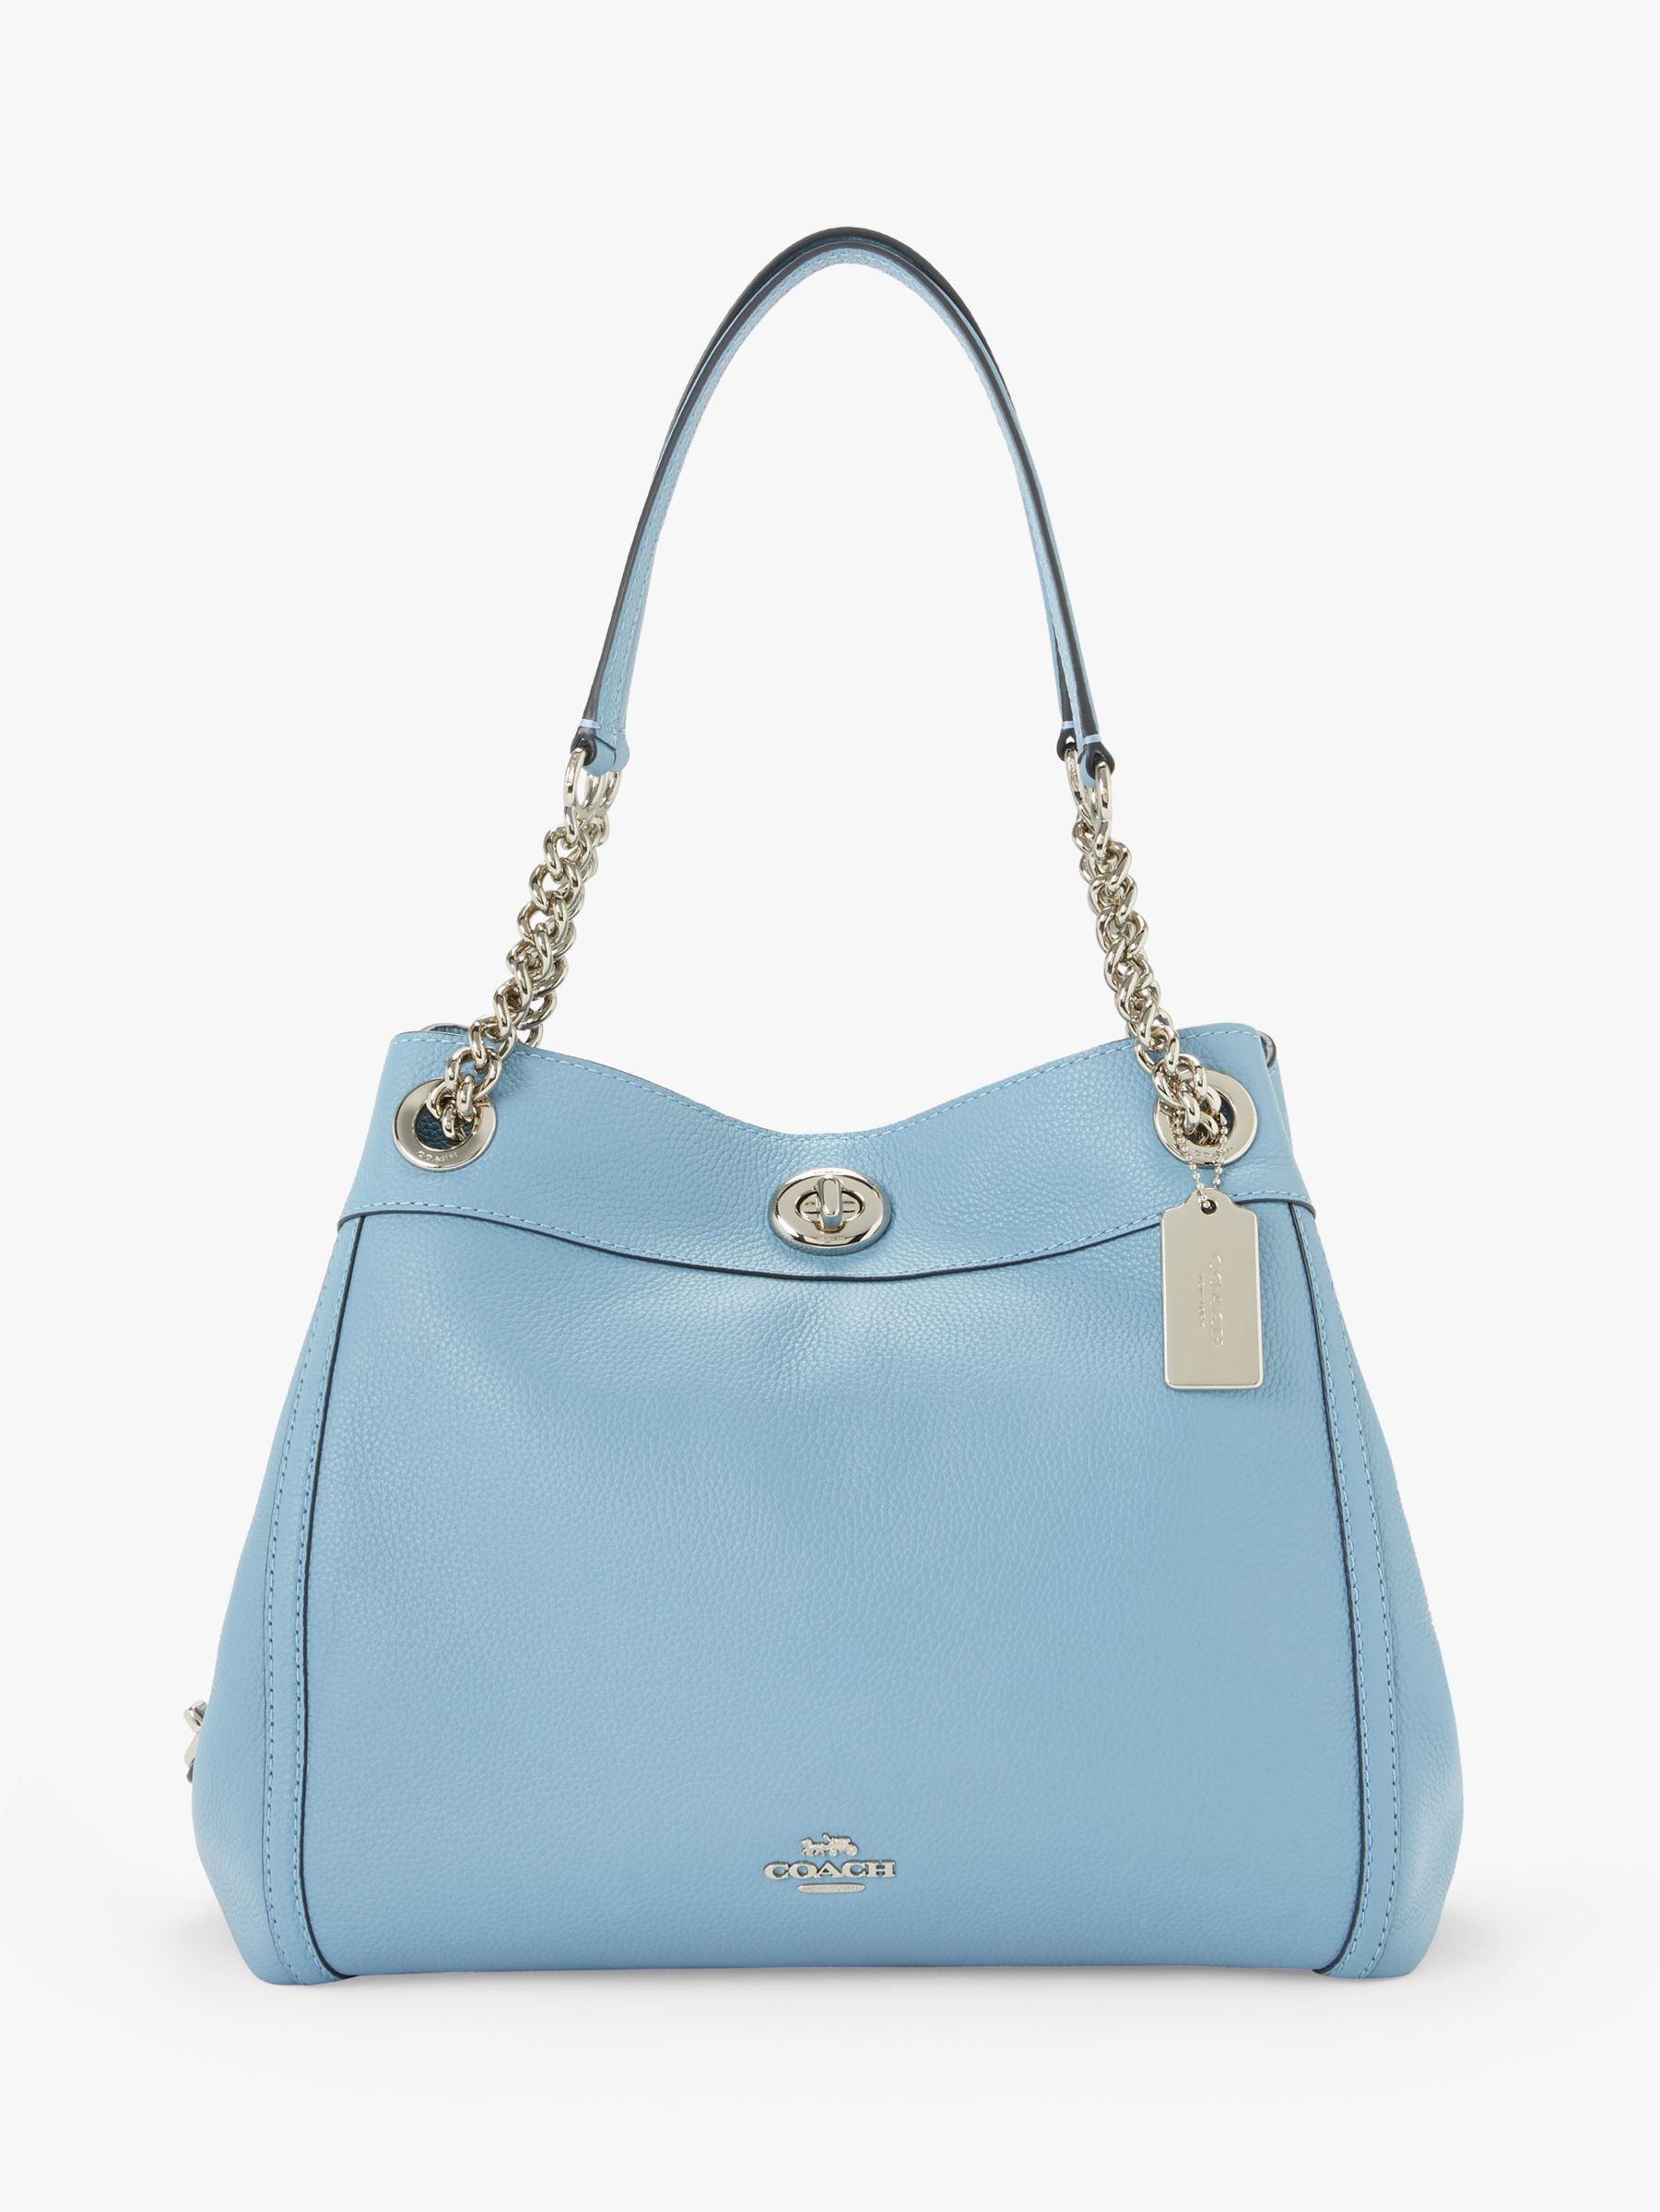 ae5ece2e0469 Coach Turnlock Edie Leather Shoulder Bag at John Lewis   Partners